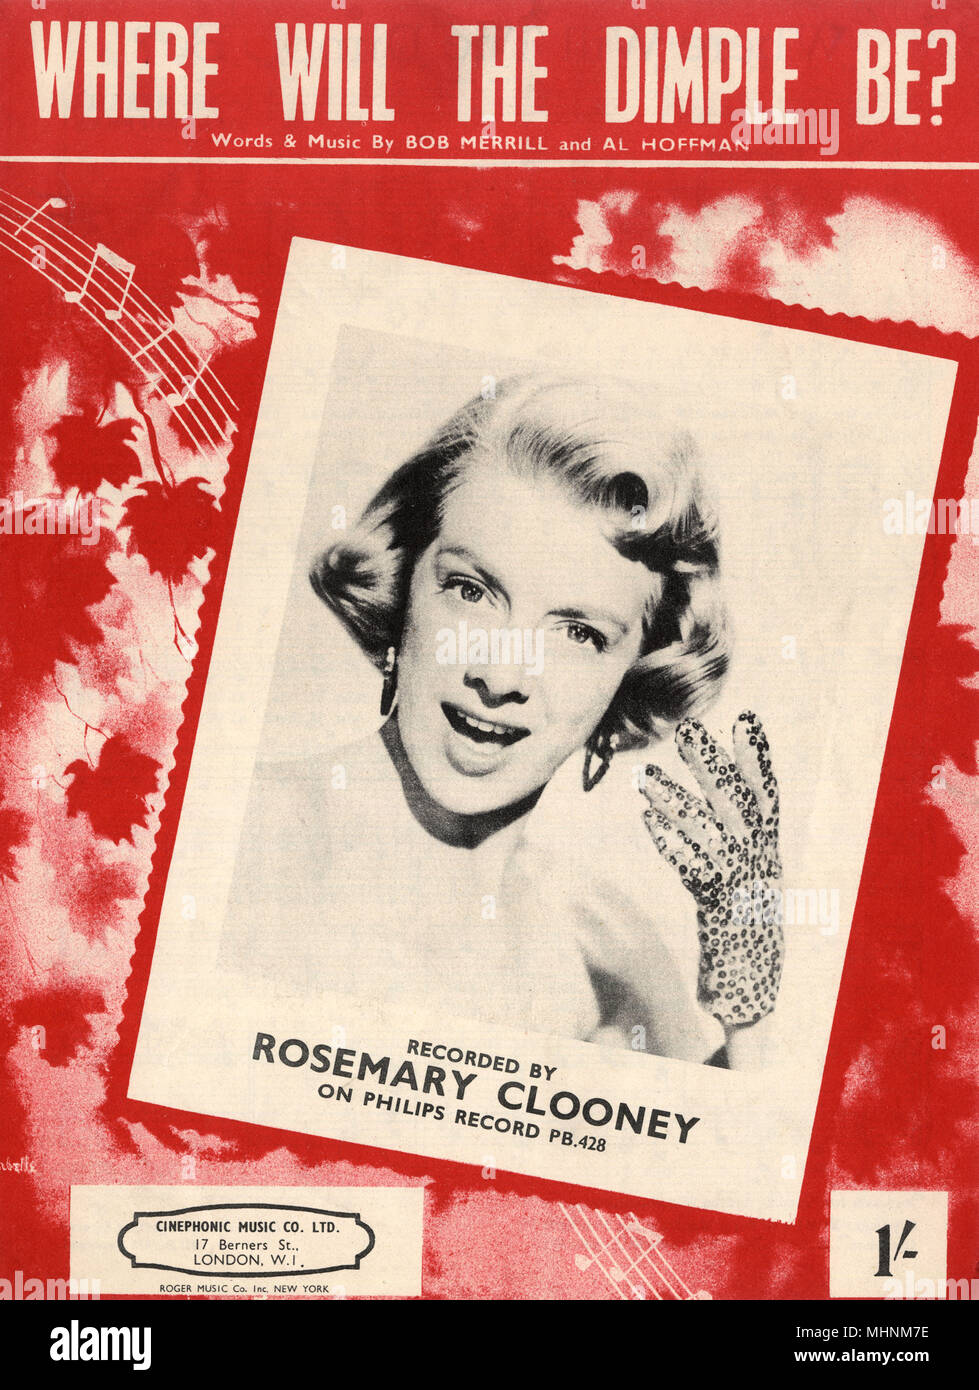 'Where will the dimple be?' - Music Sheet Cover, words and music by Bob Merrill and Al Hoffmann and recorded by Rosemary Clooney on Philips Records. An illustration of maple leaves with a photo of Rosemary Clooney in the middle.     Date: circa 1950 - Stock Image